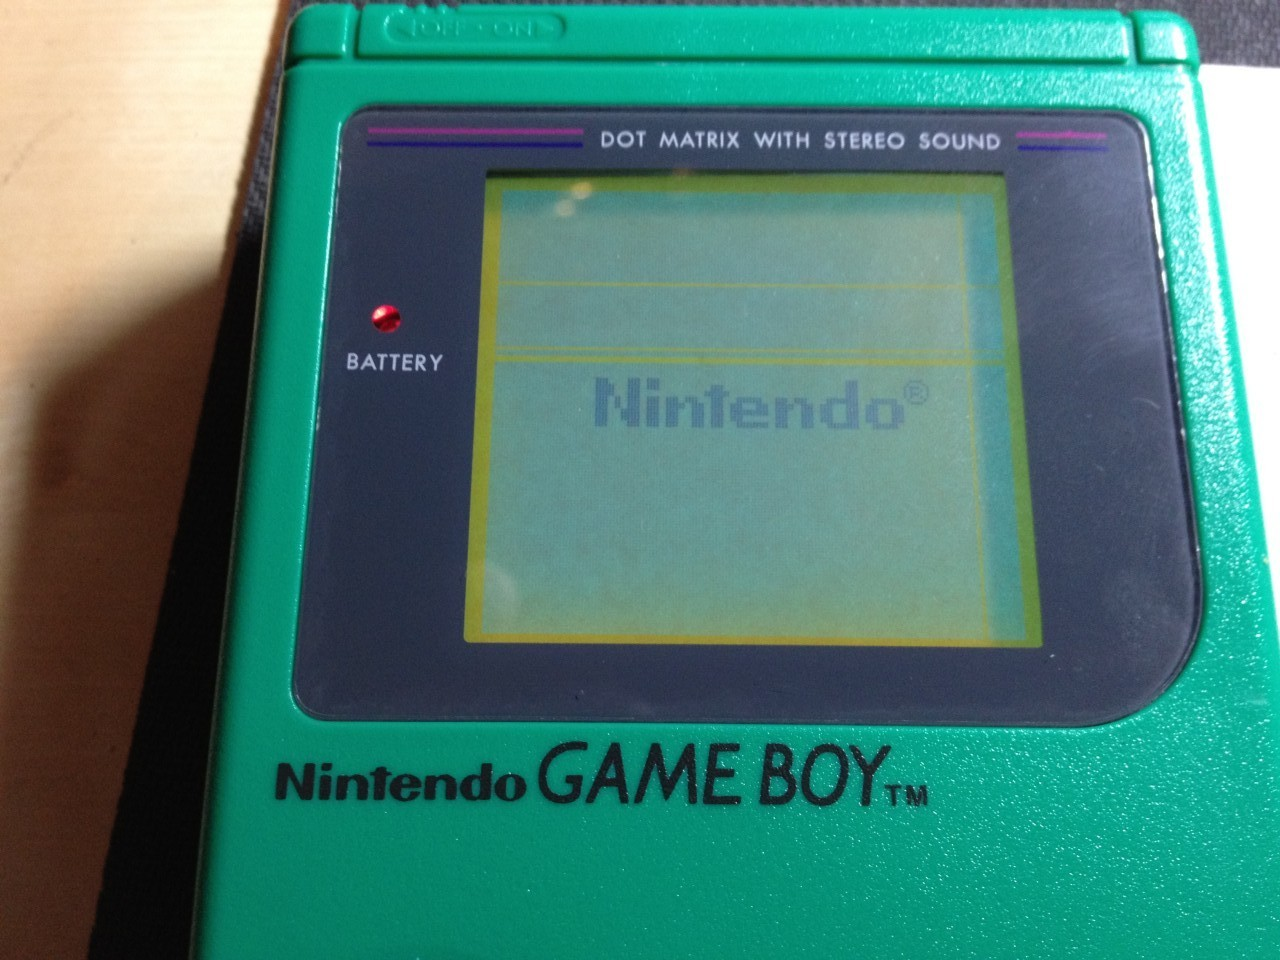 The finished gameboy booting